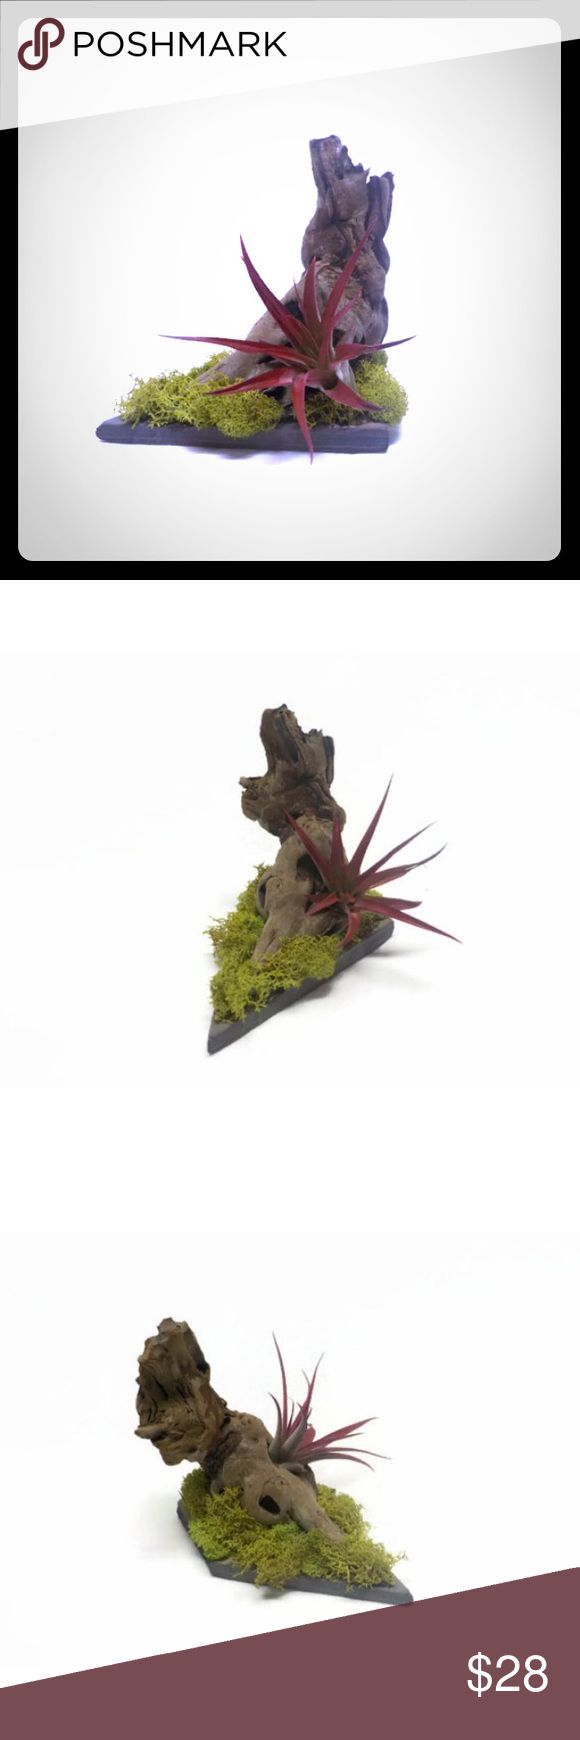 Red Air Plant and Driftwood Decor Beautiful red tillandsia, green moss and rustic driftwood make this one of a kind air plant floral arrangement something to cherish.  It does require misting with water a few times per week in dry conditions.  The green decorative moss needs no care.  Care instructions included.  Feel free to message us if you would like to add a gift card or note.  The air plant, driftwood and decorative moss are adhered with plant safe glue.  This piece is 5 inches long, 3…